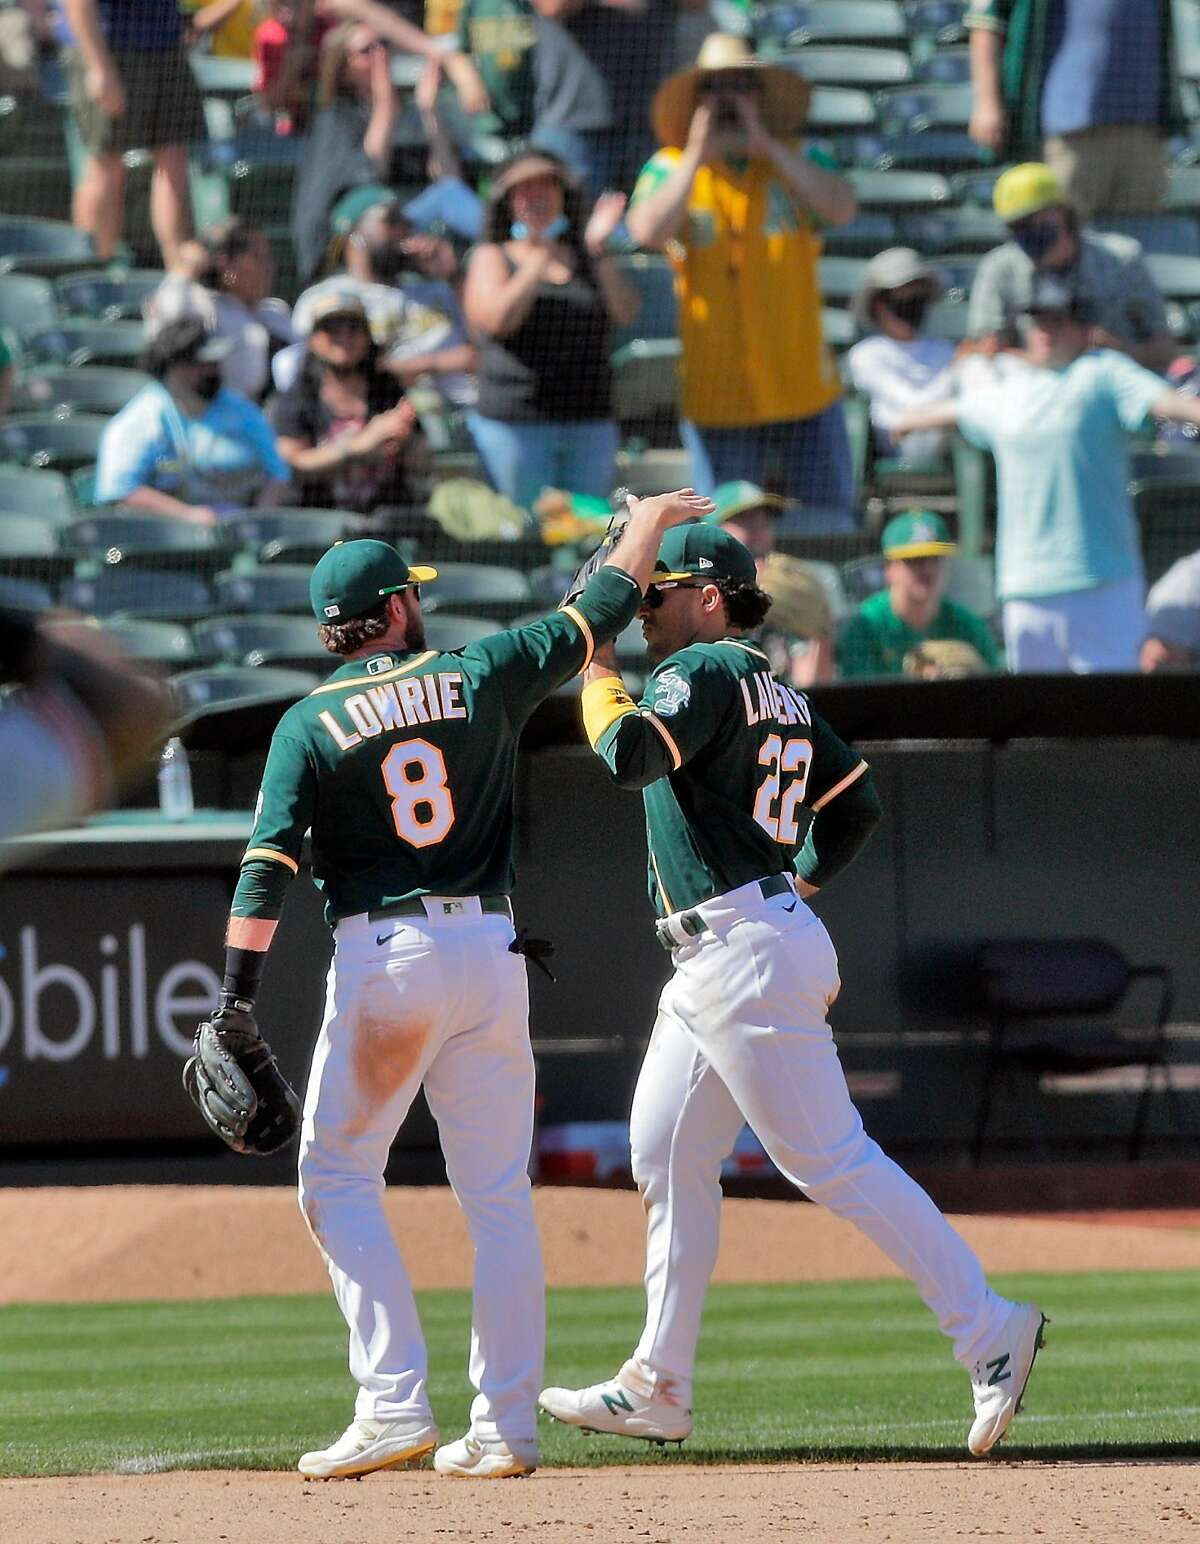 Ramon Laureano (right) gets a pat on the head from Jed Lowrie after making a leaping catch at the wall in the eighth inning to save a run. Laureano then homered in the bottom of the inning.